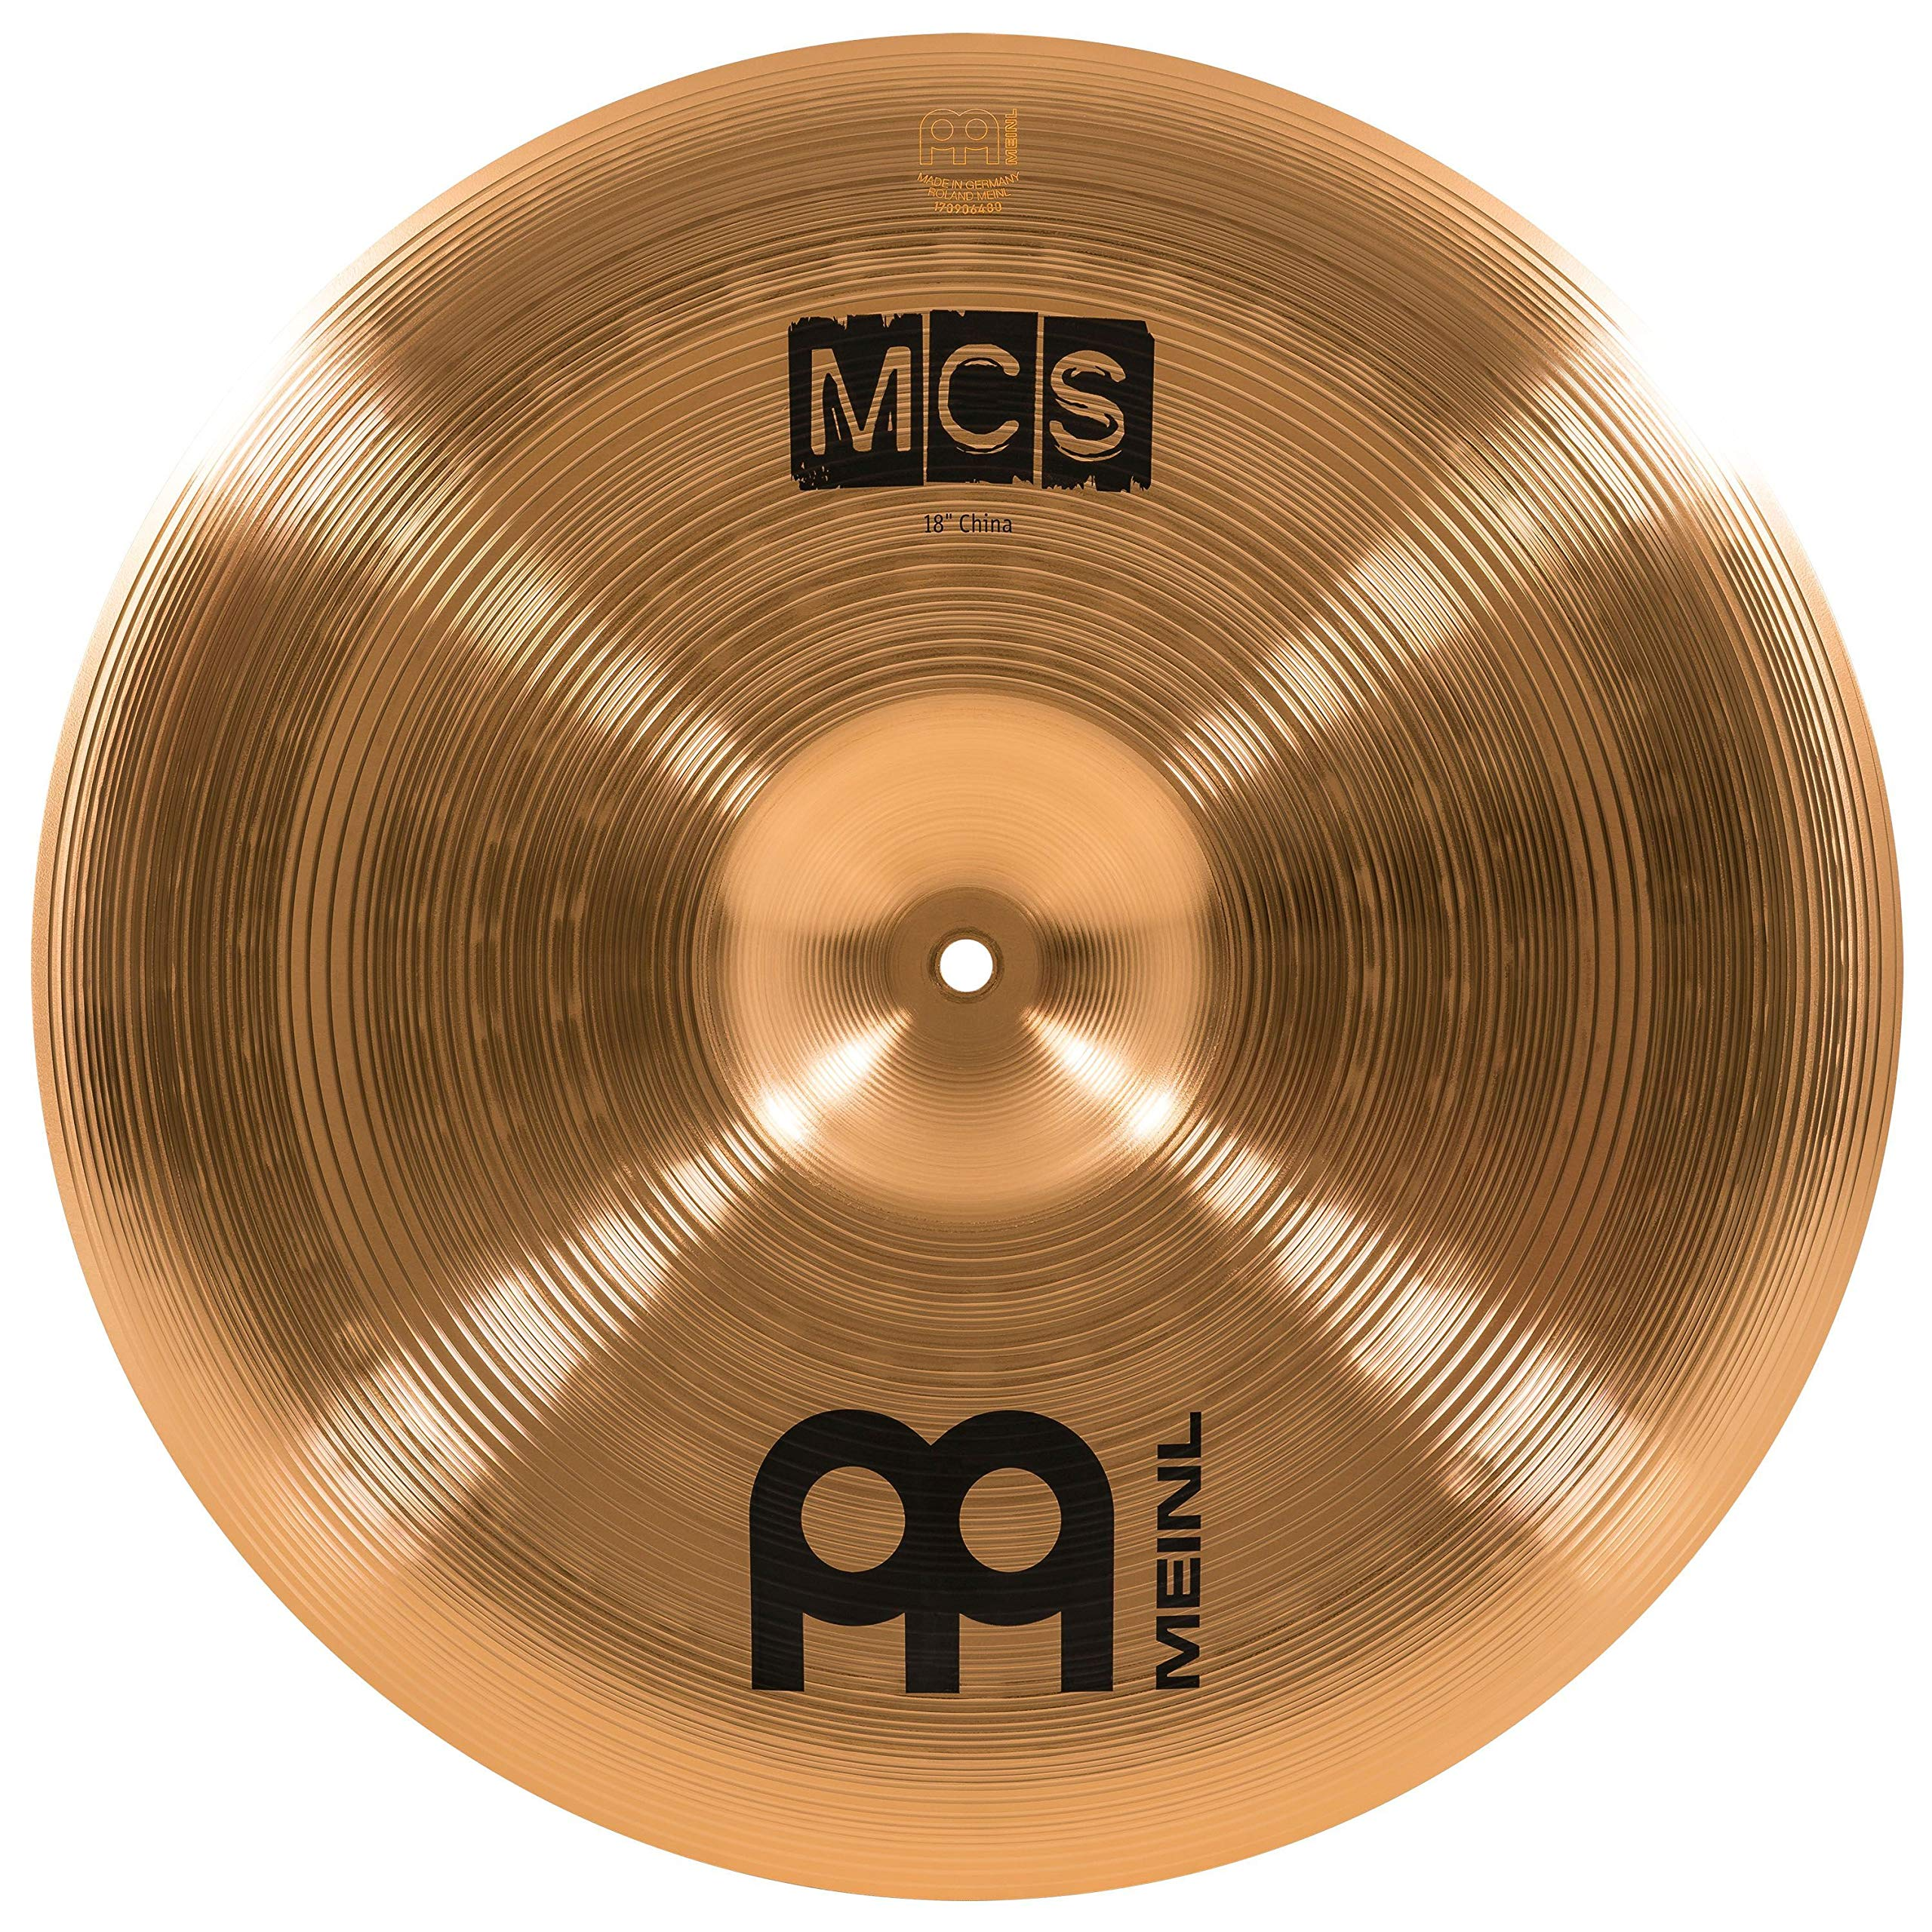 Meinl 18'' China Cymbal - MCS Traditional Finish Bronze for Drum Set Use, Made In Germany, 2-YEAR WARRANTY (MCS18CH) by Meinl Cymbals